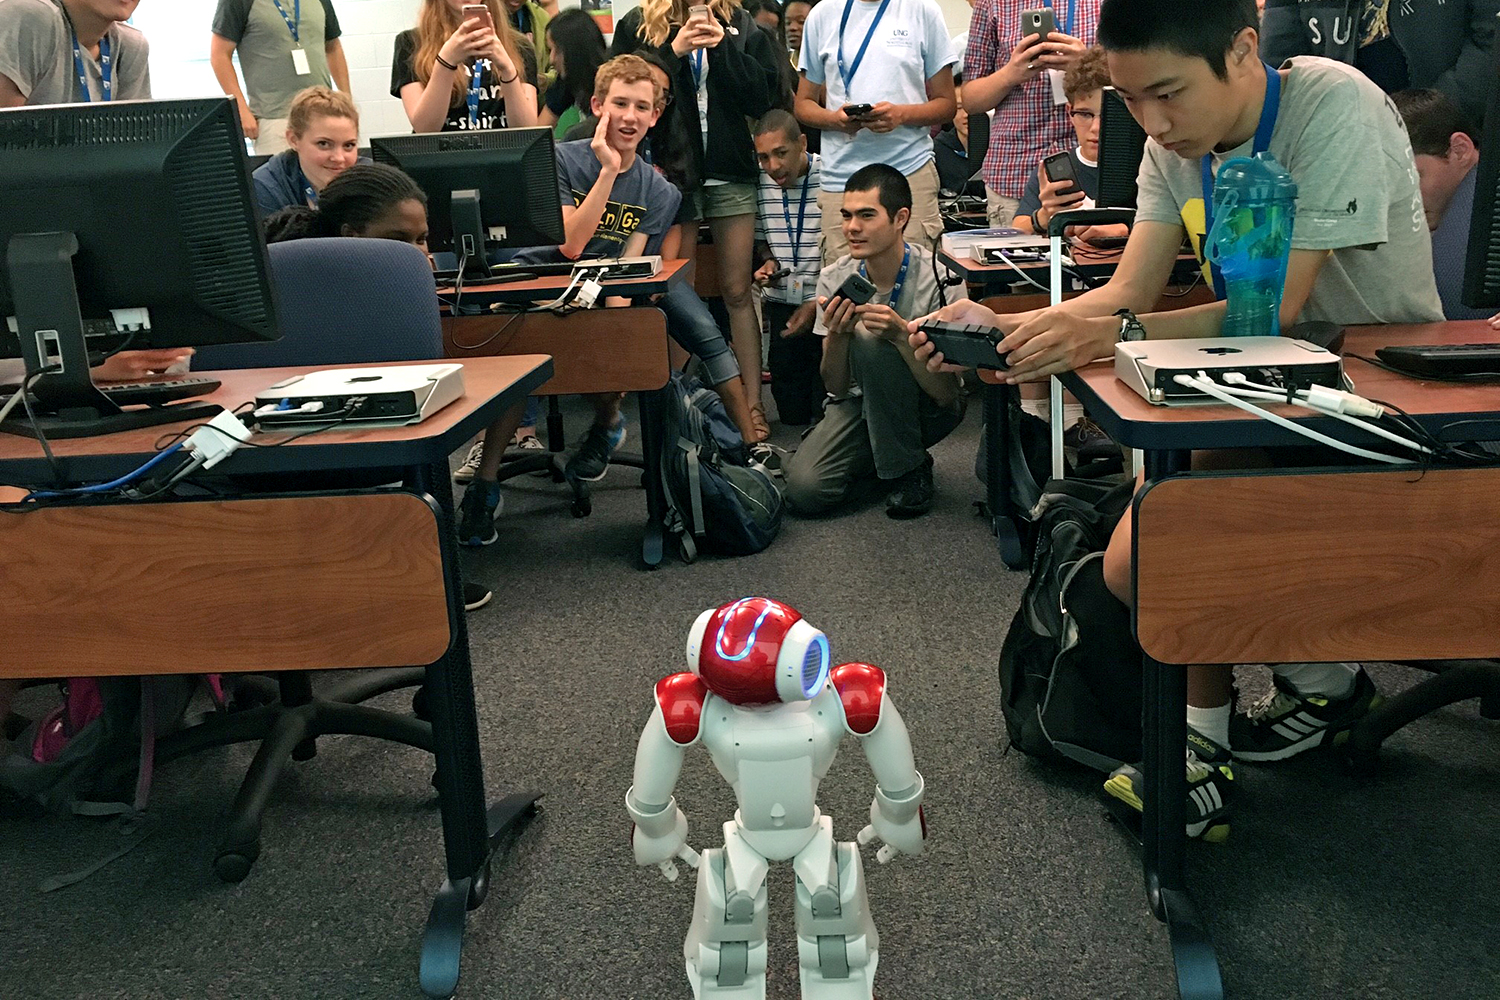 Students watch a small robot